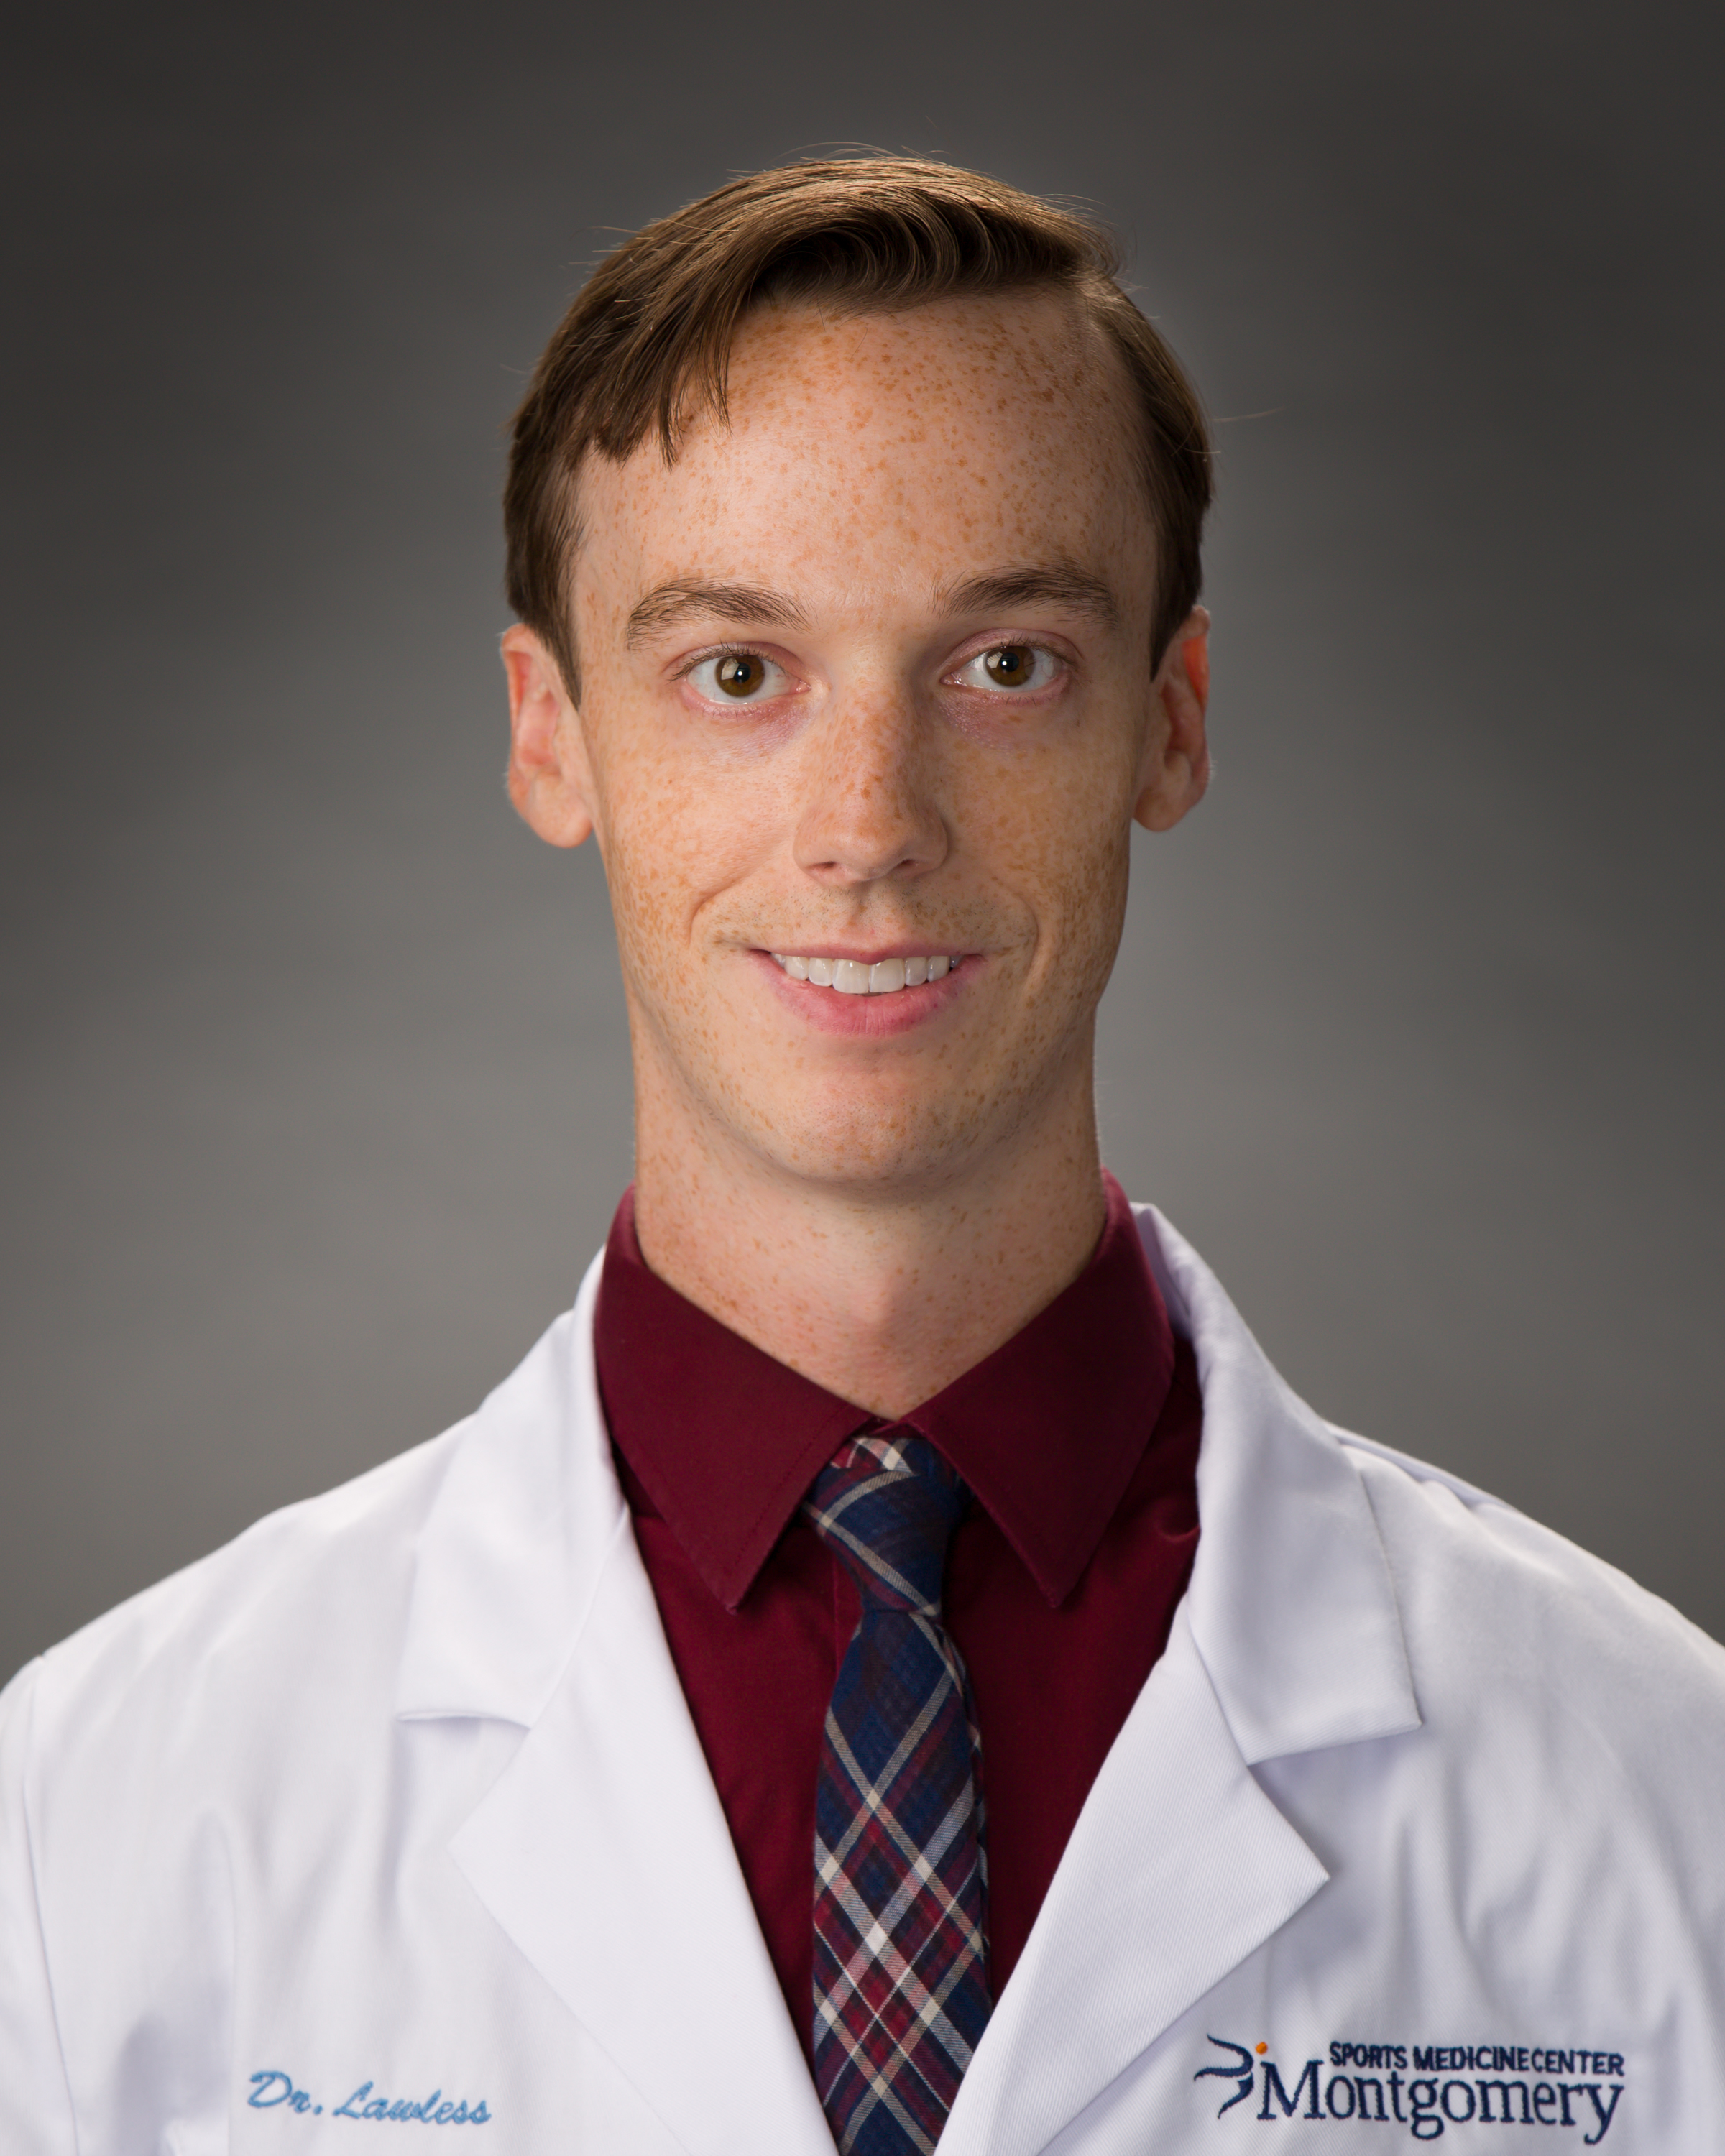 Dr. Lawless